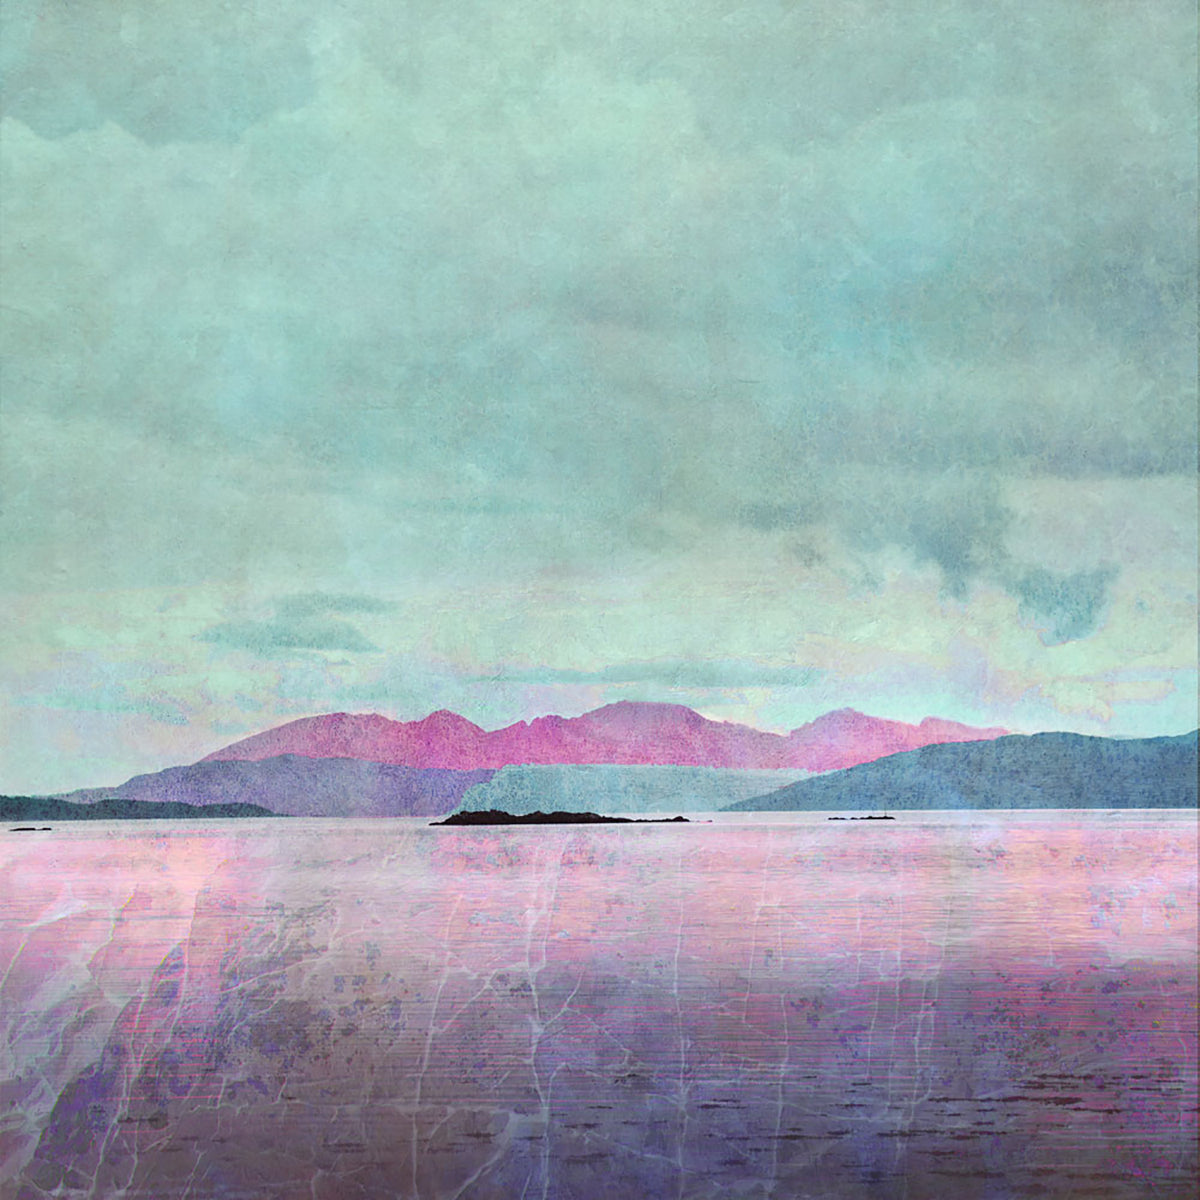 Arran-sunset-over-sound-of-bute-ARN01